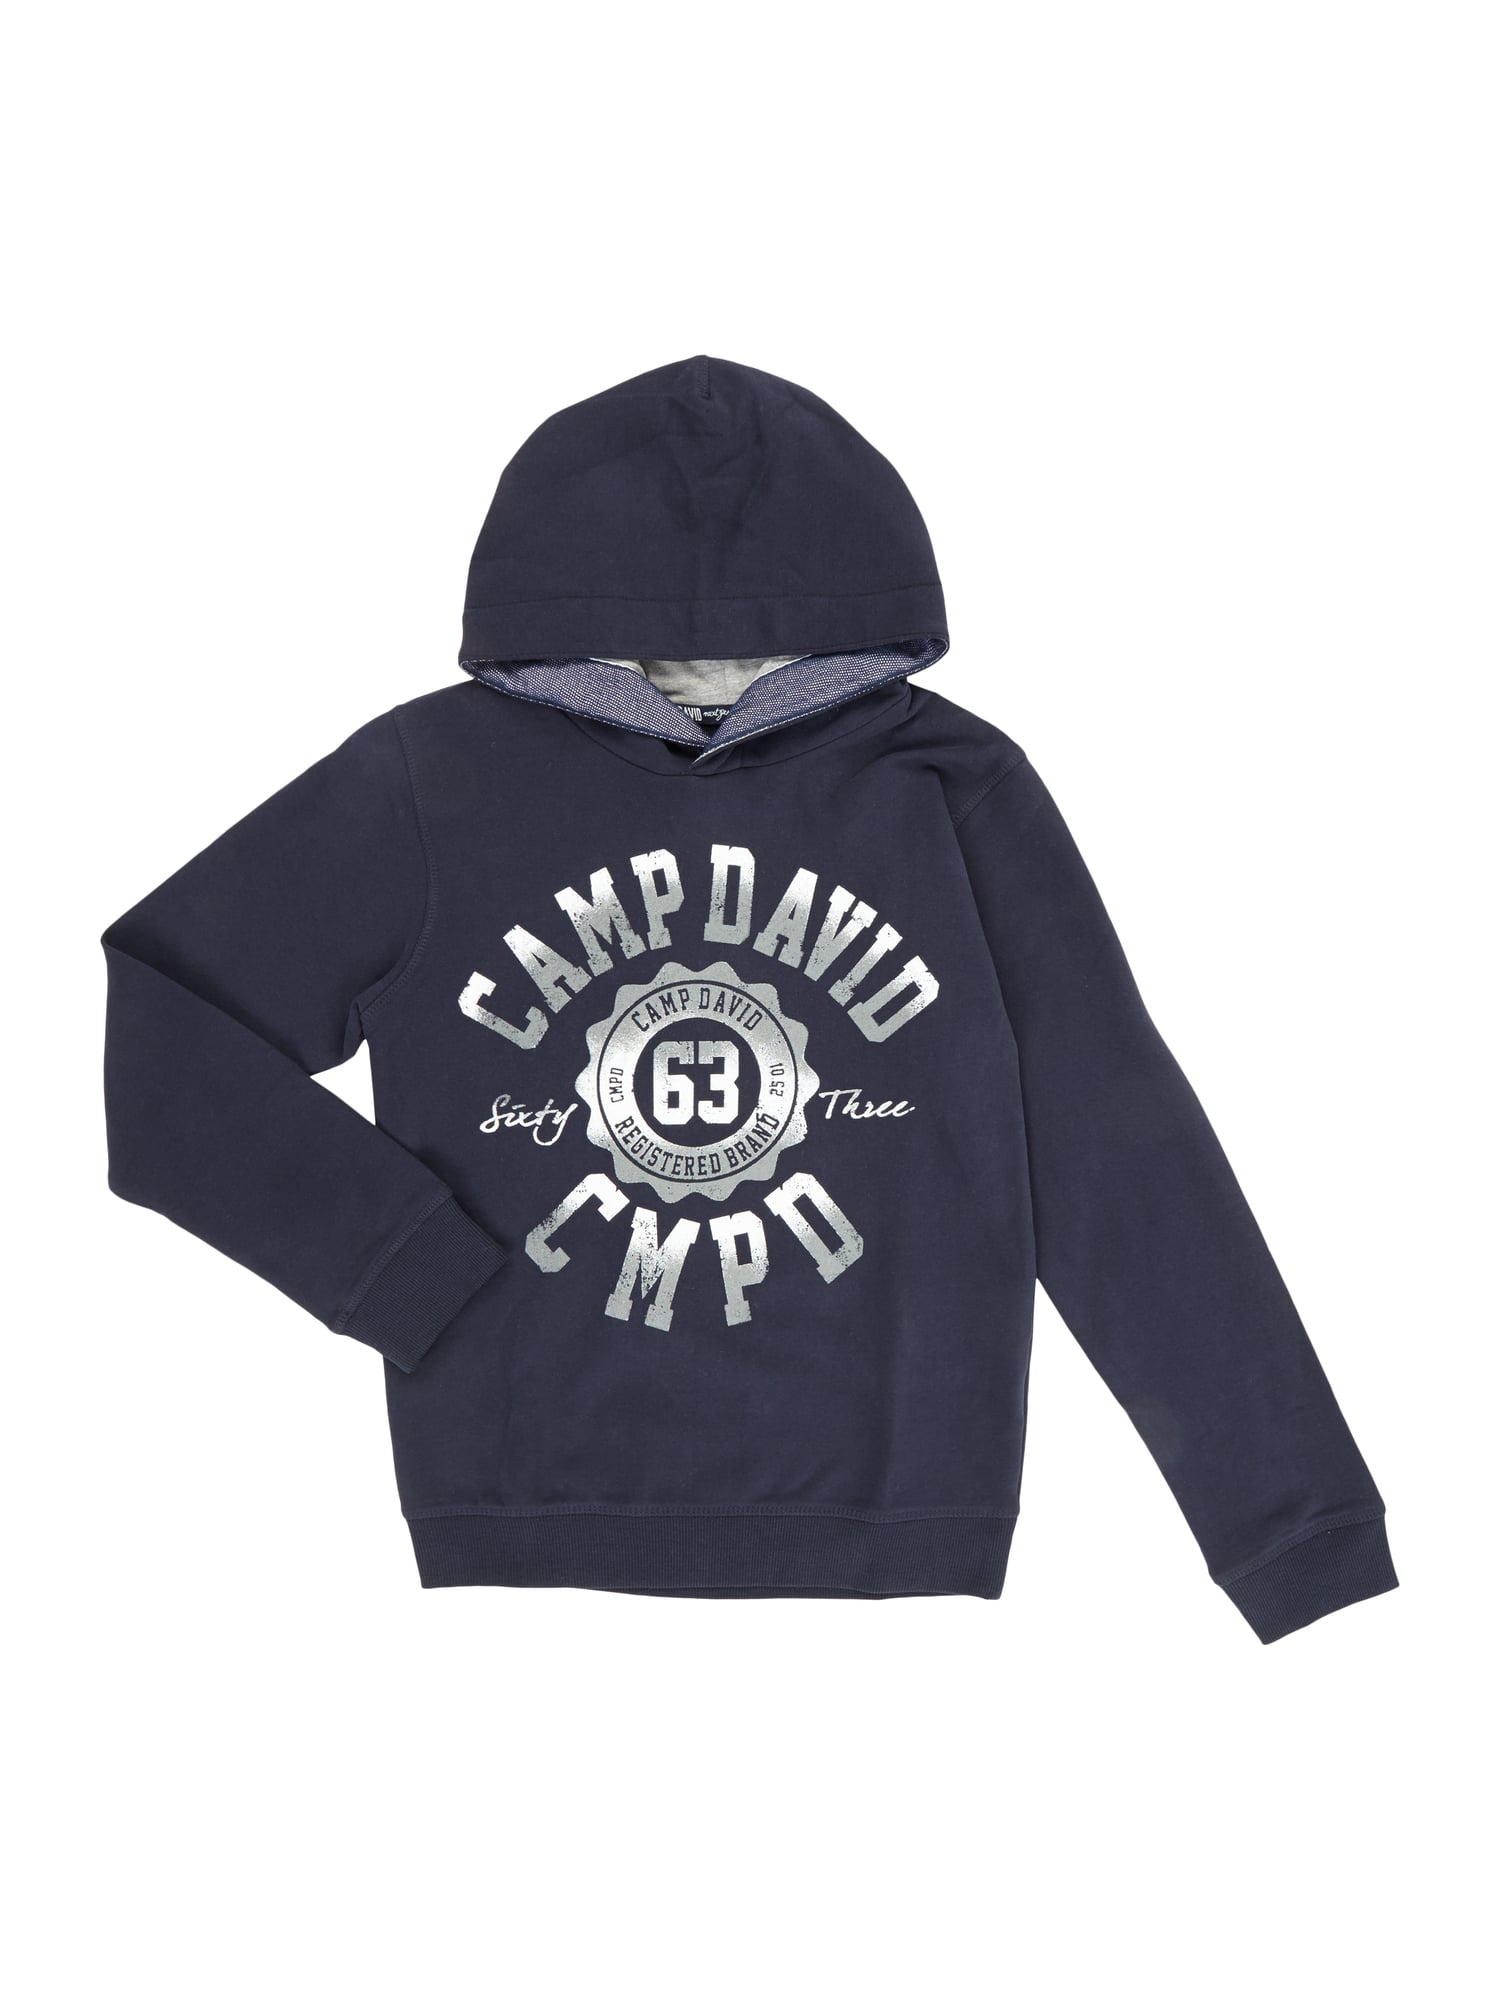 camp david hoodie mit logo print in blau t rkis online kaufen 9704849 p c online shop sterreich. Black Bedroom Furniture Sets. Home Design Ideas